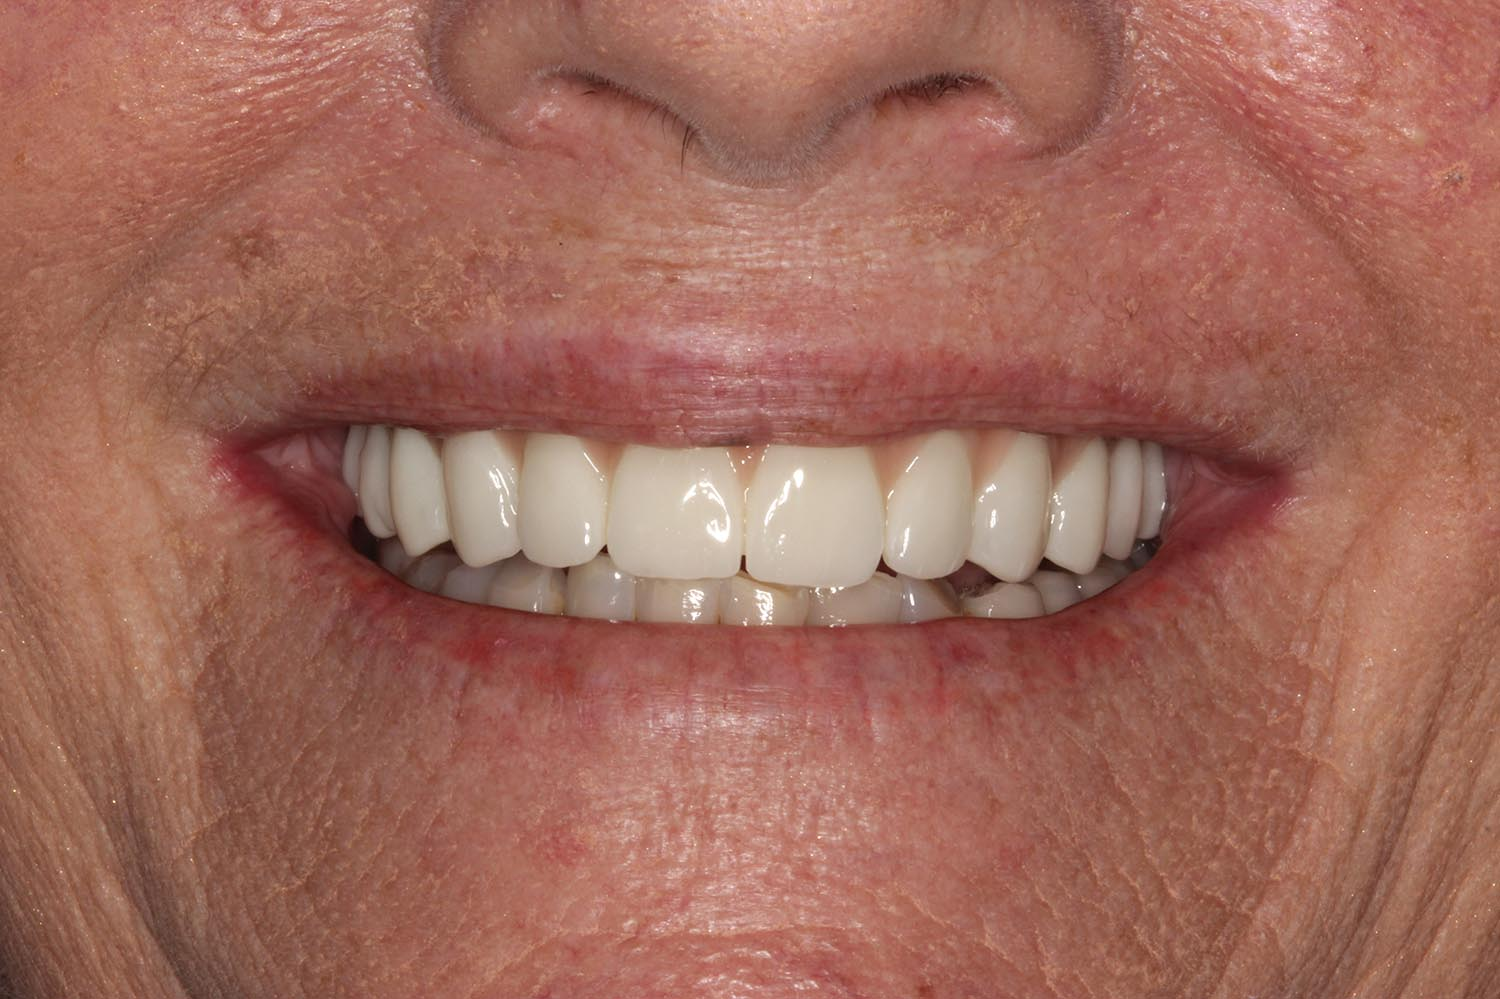 After adding limited implants and restorations